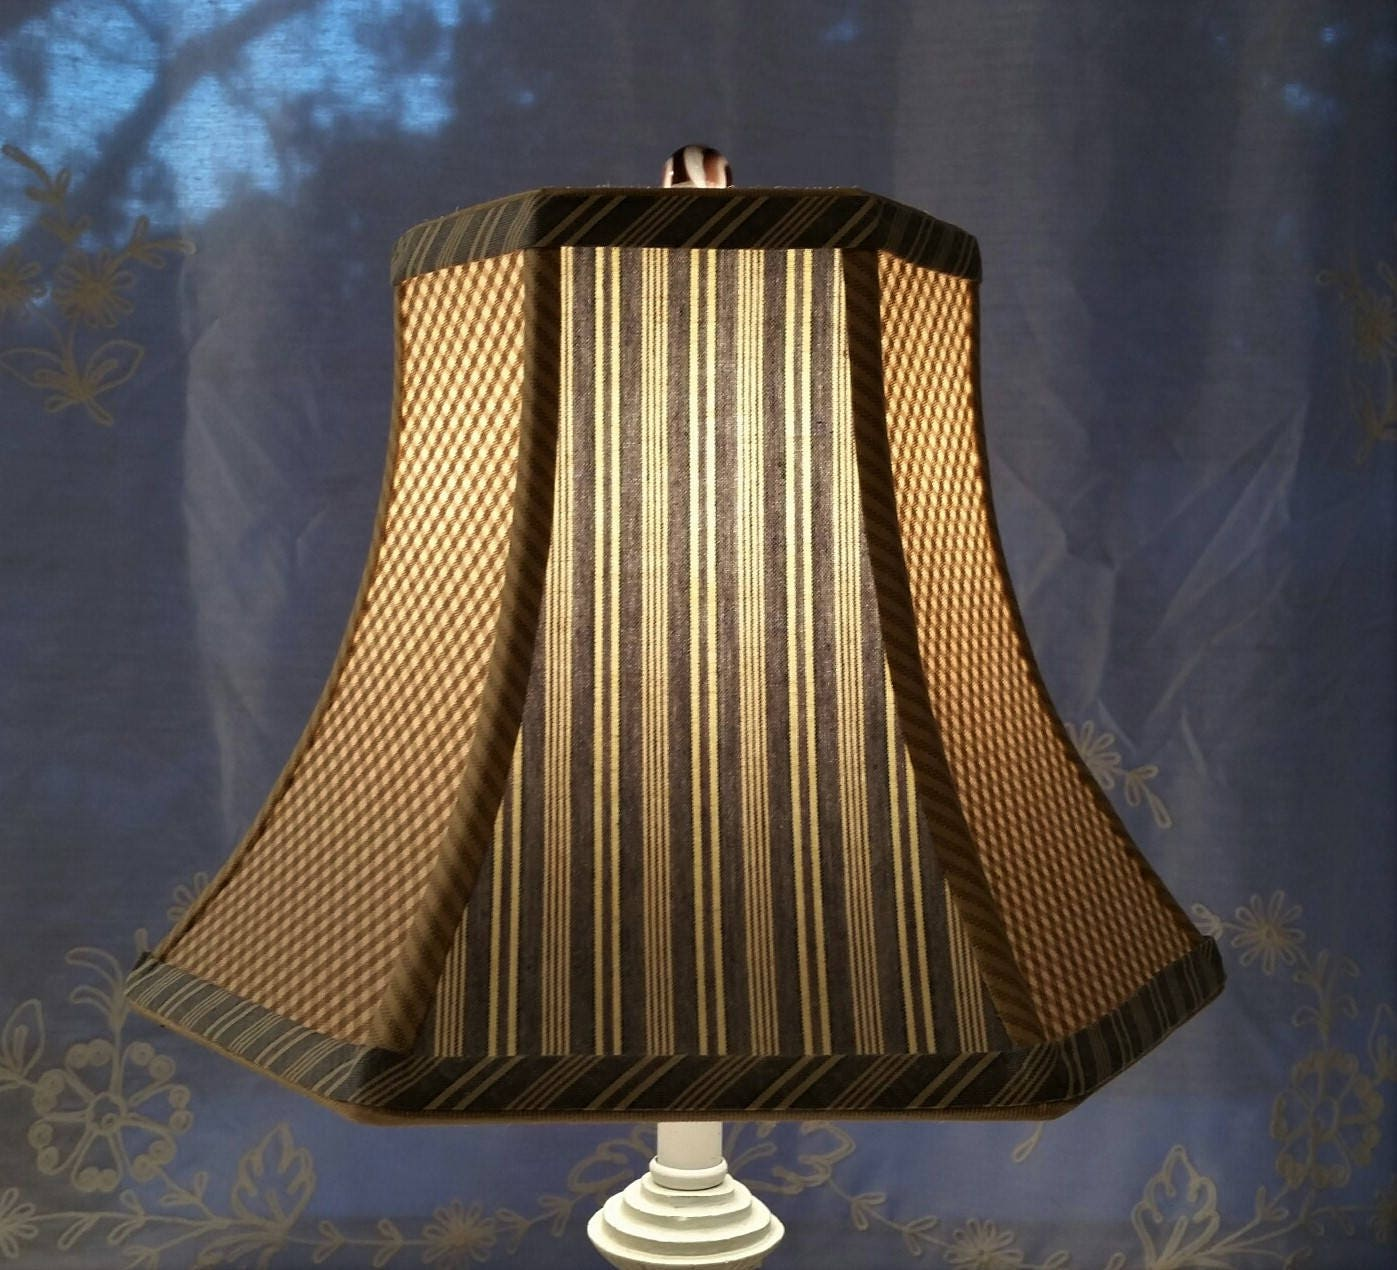 Blue Stripe Lampshade Beige Gingham Hexagon Bell Lamp Shade